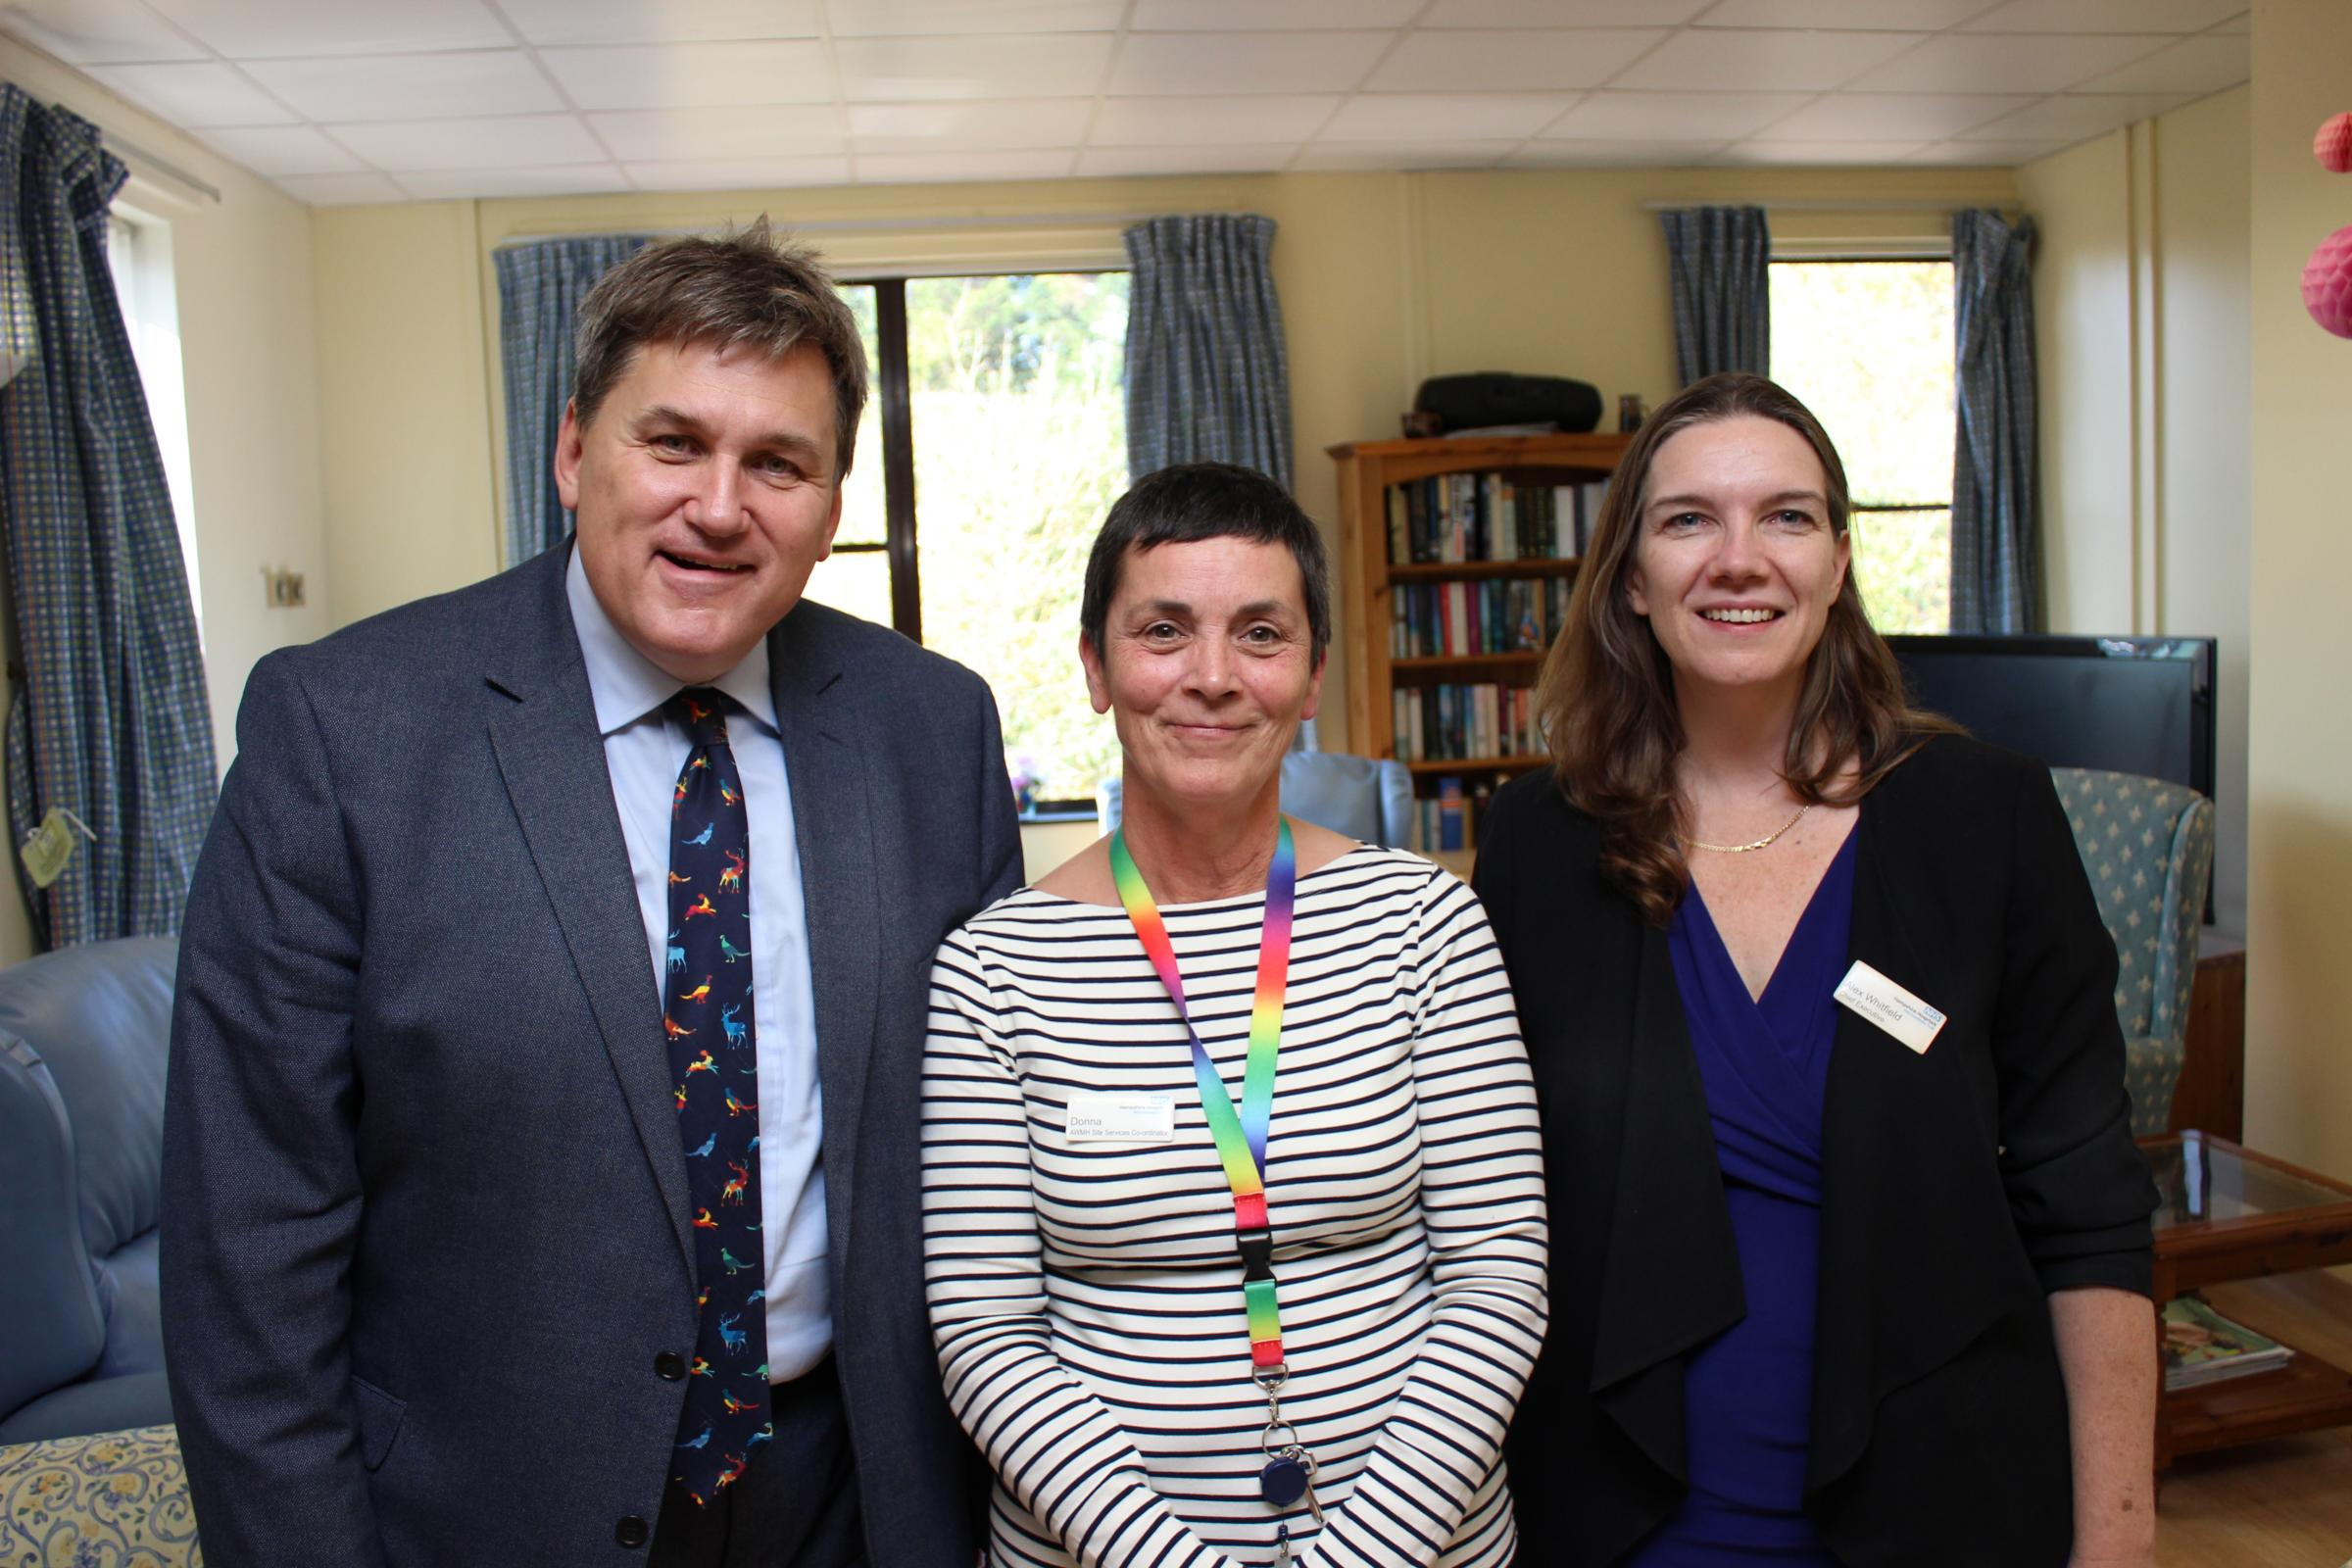 Donna McCormack (centre) with Kit Malthouse, MP for North West Hampshire, and Alex Whitfield, chief executive of Hampshire Hospitals NHS Foundation Trust